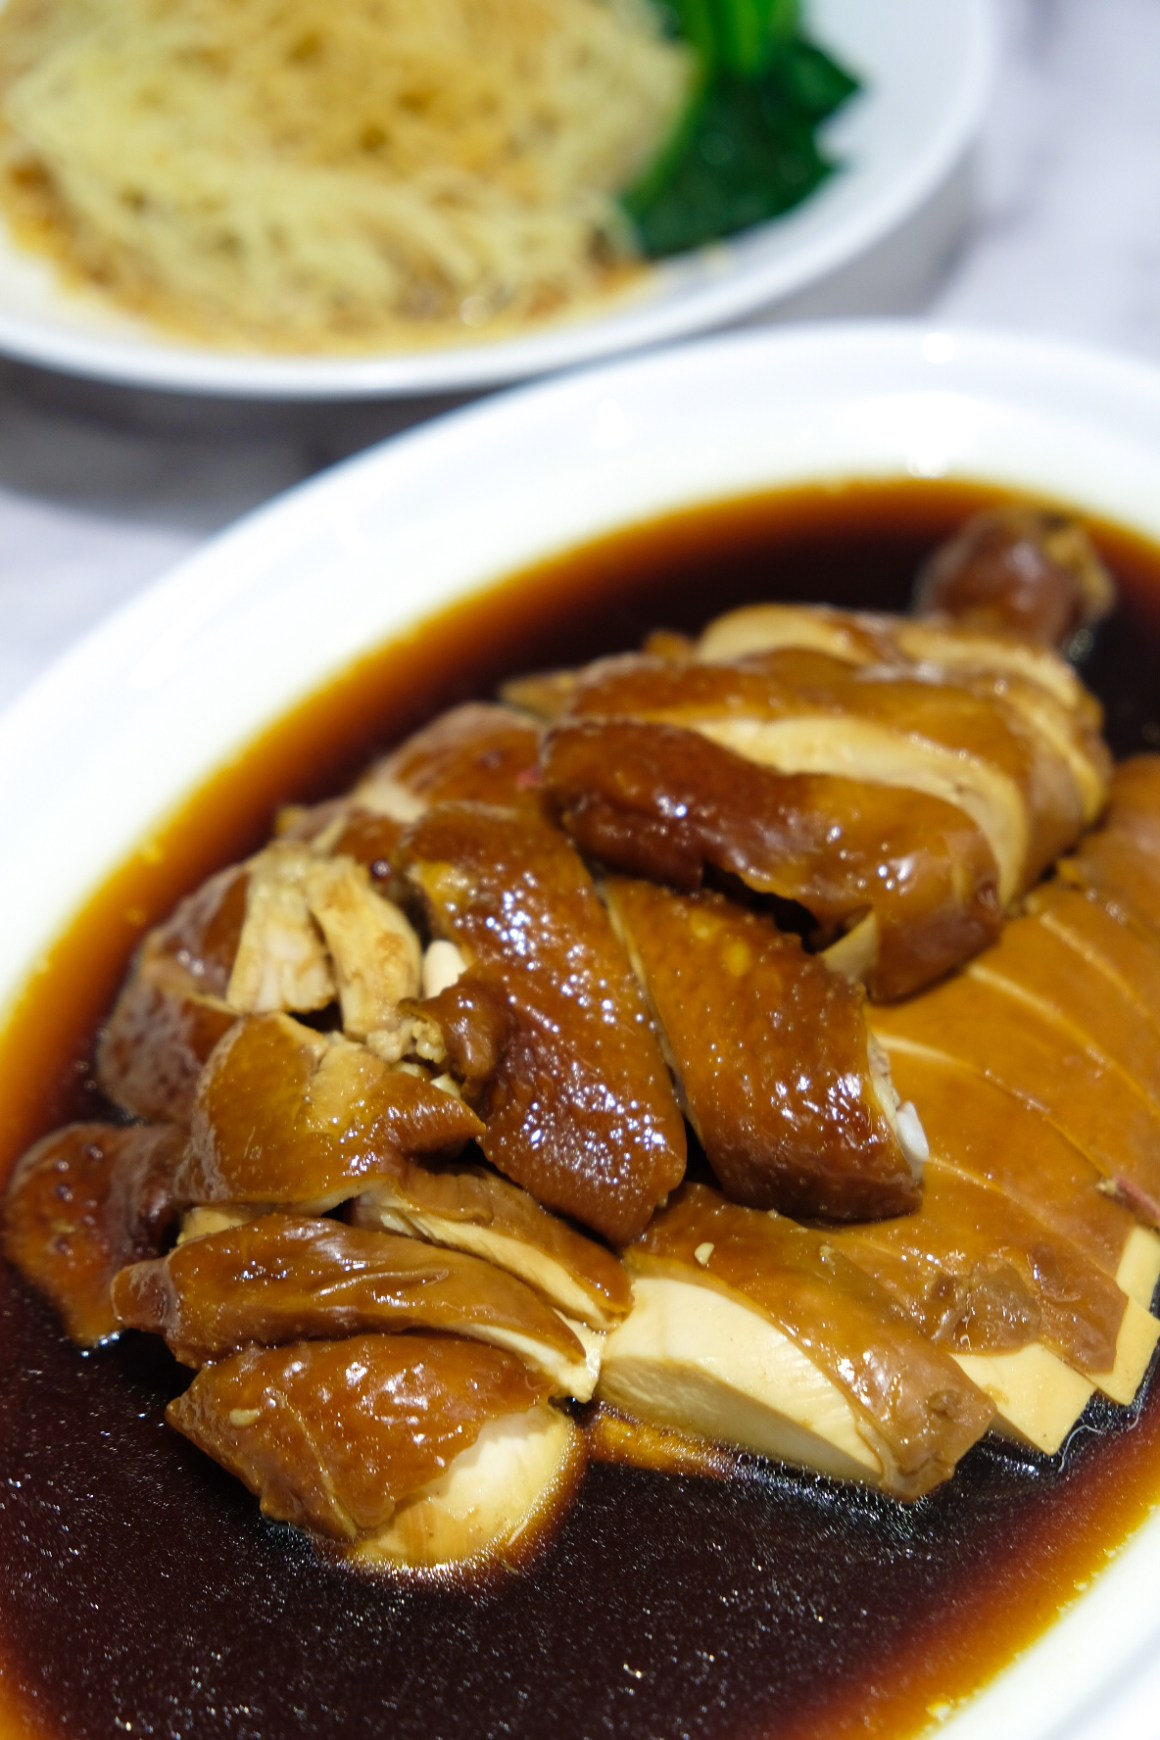 Ho Fook Hei Soy Sauce Chicken By Joyden At Great World City - Specialty Rose Wine Soy Sauce Chicken ($19 Half/$35 Whole)